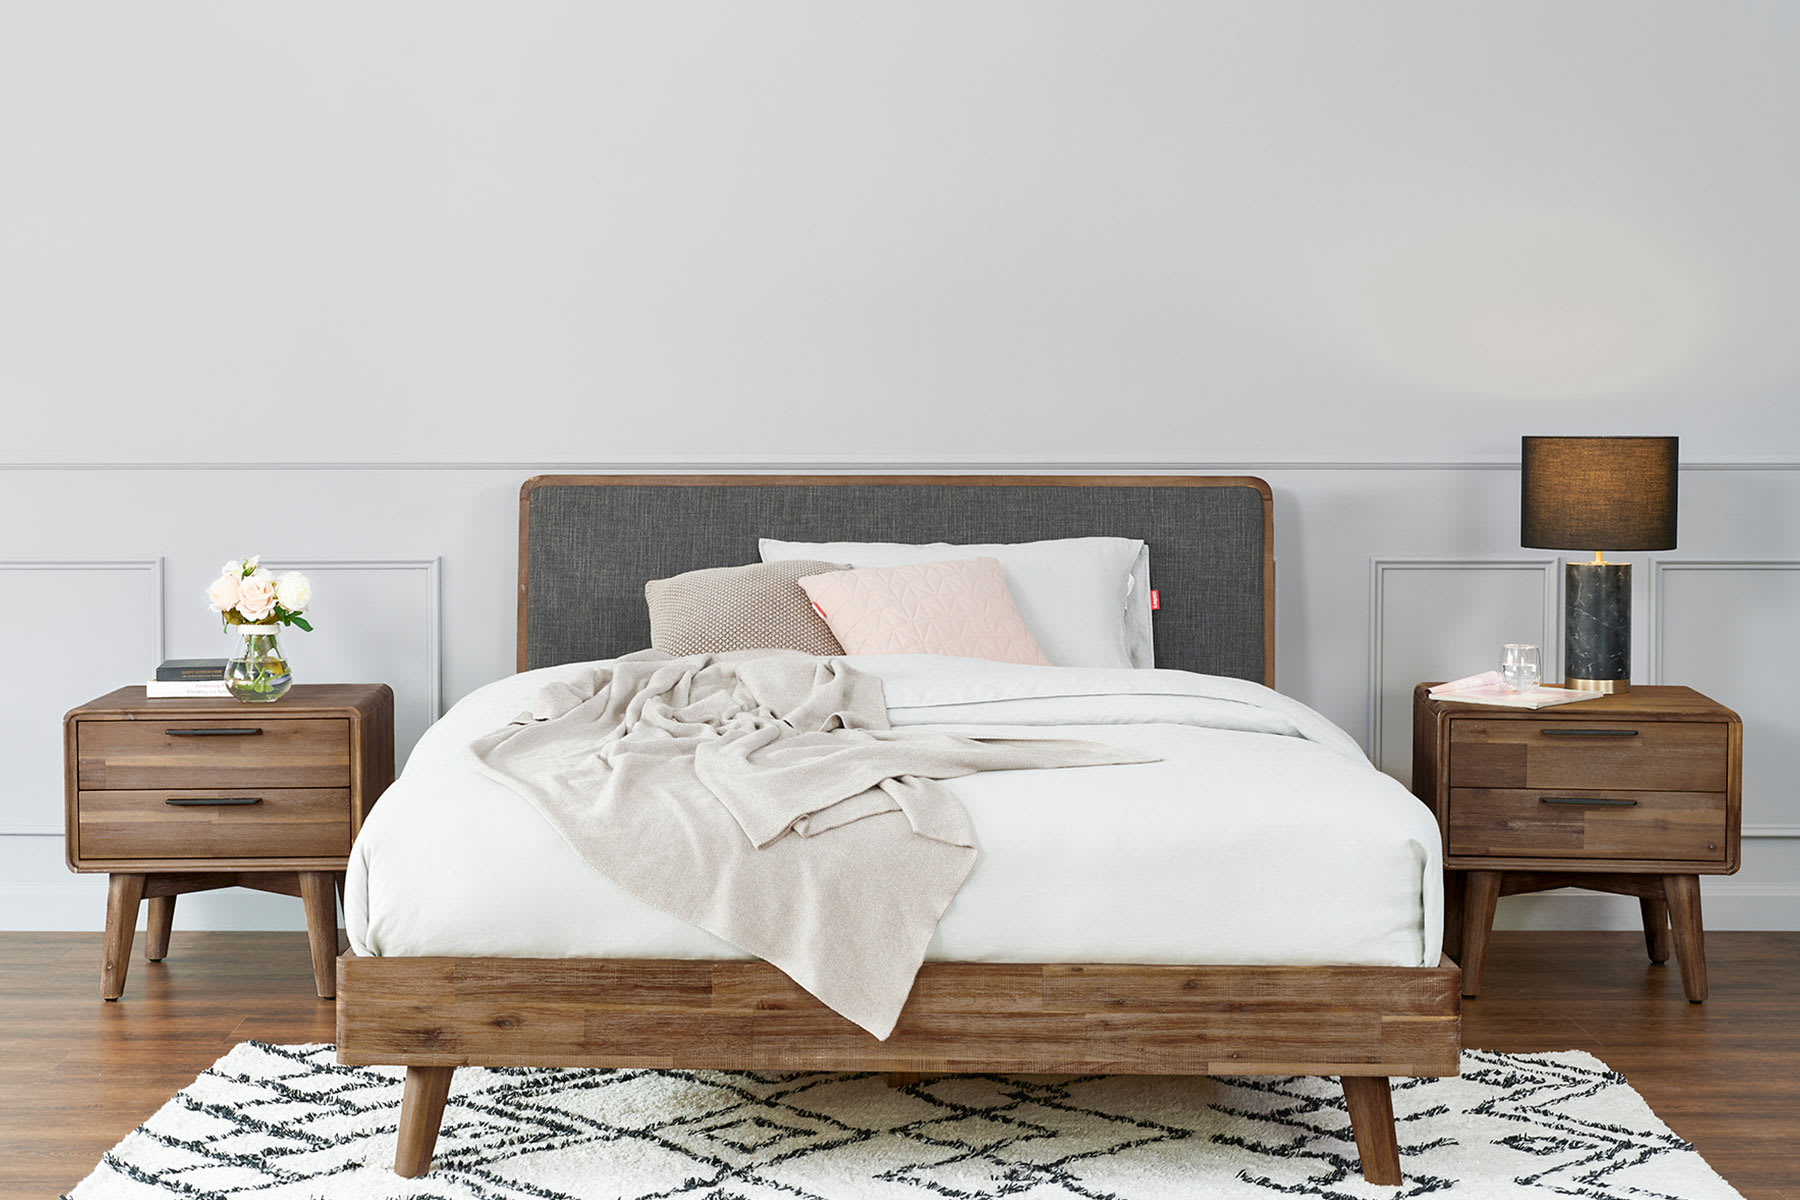 wooden bed with gray fabric headboard, carpet and bedside tables in modern bedroom